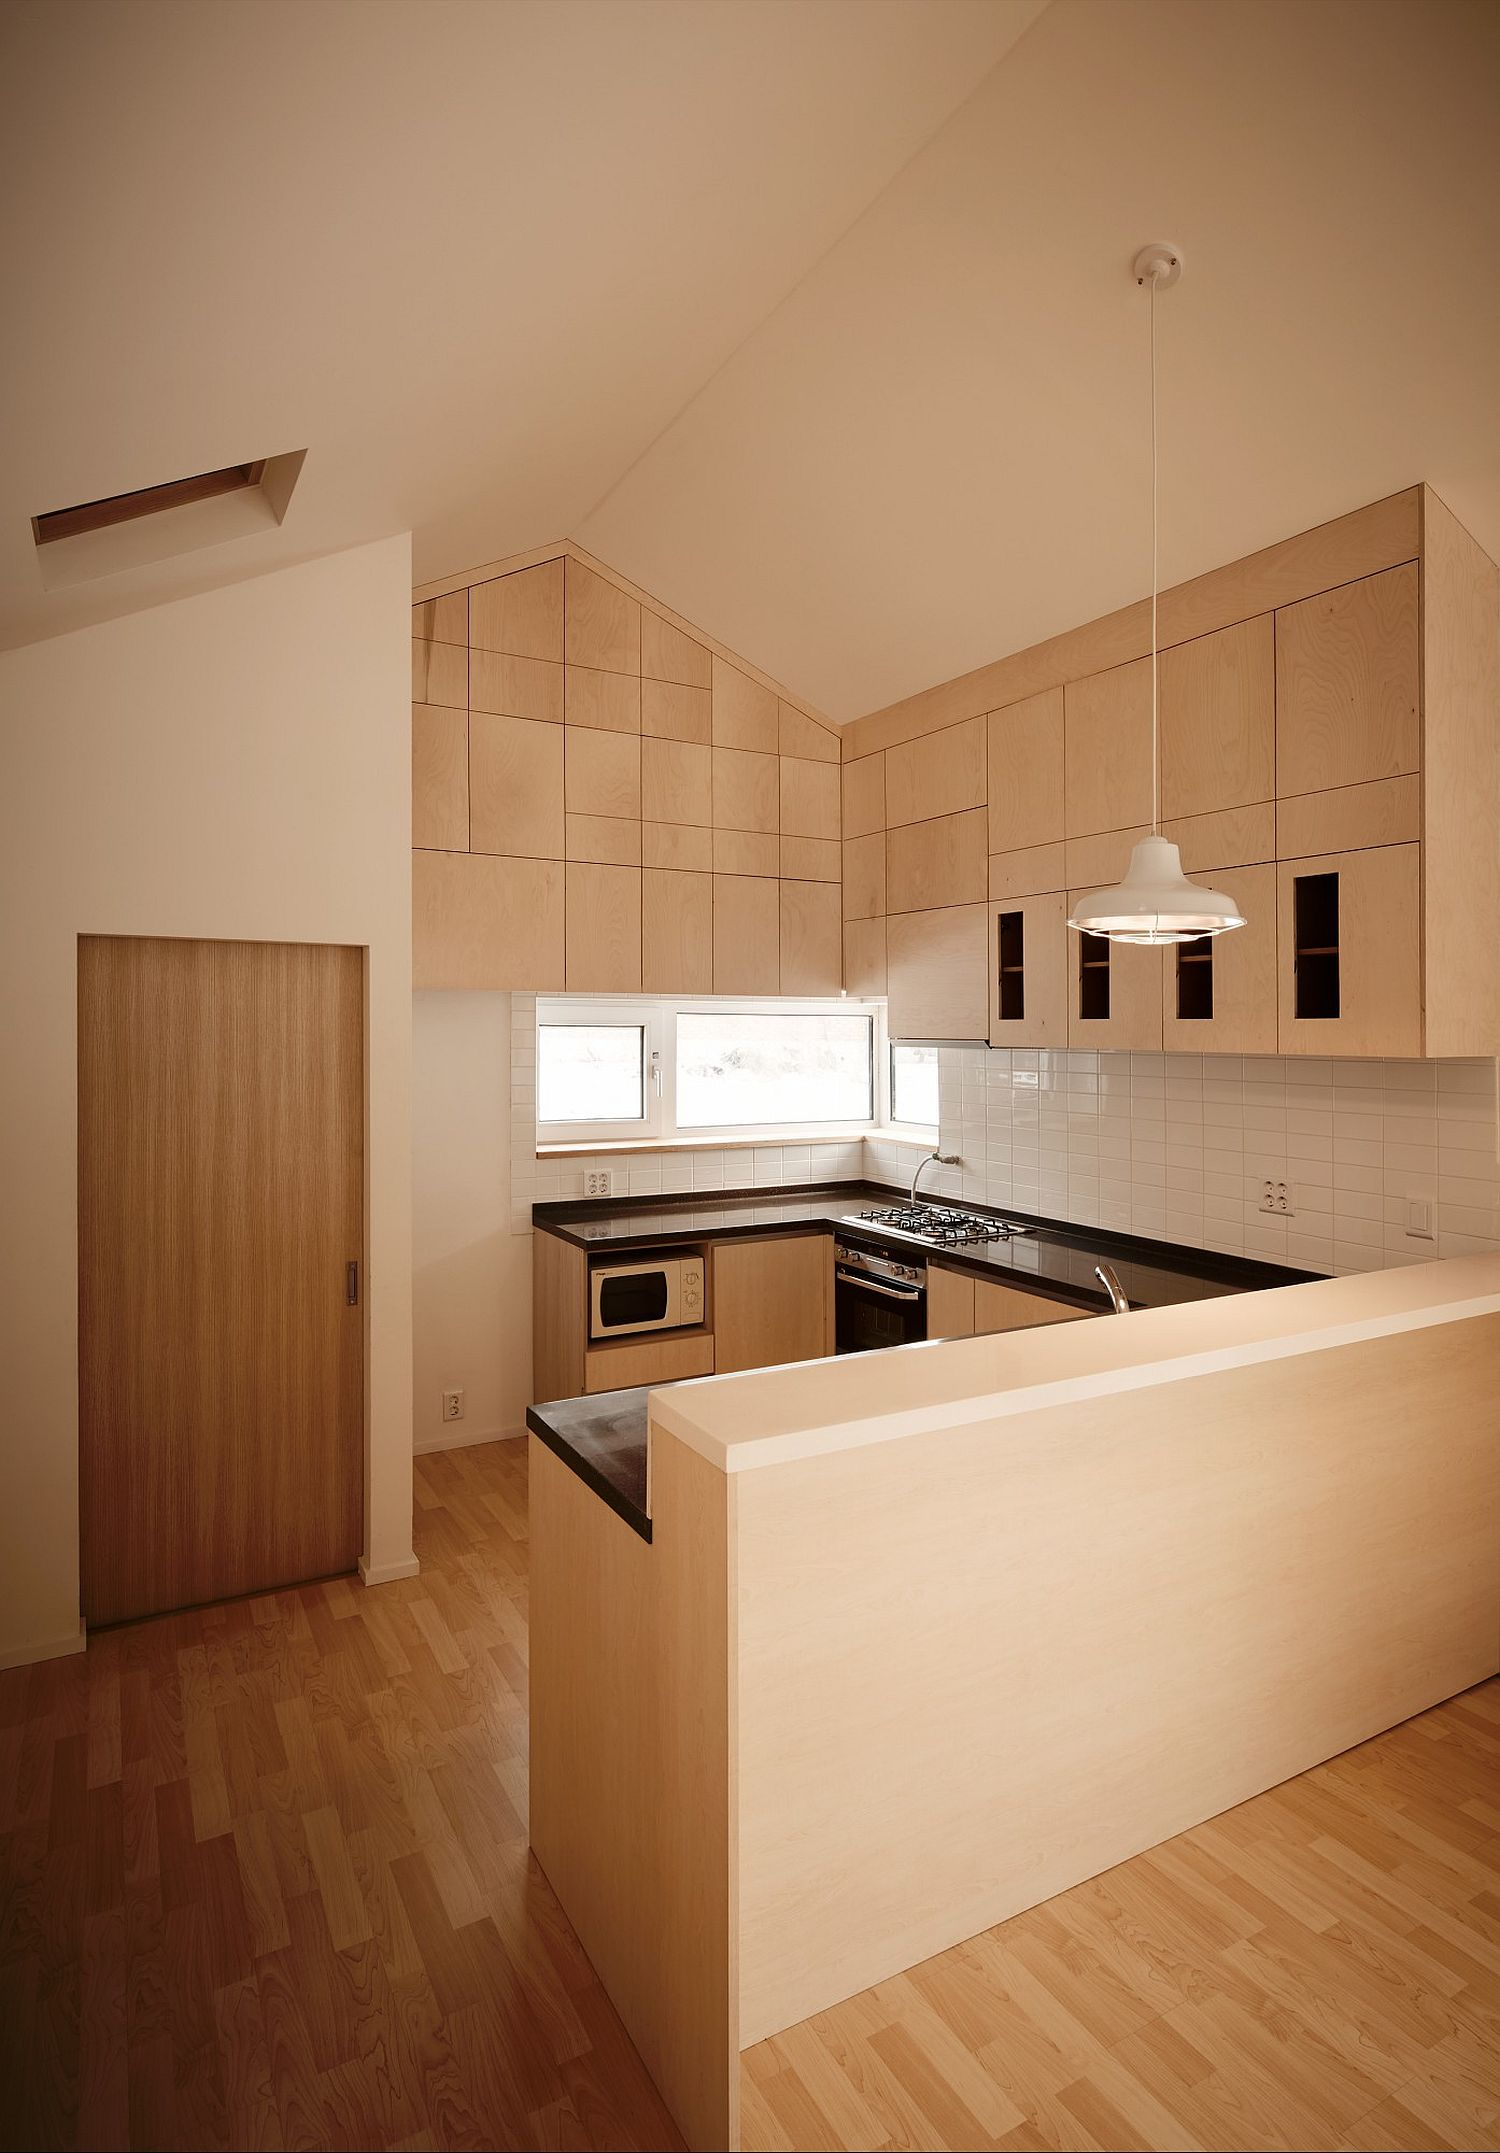 Wooden kitchen and interior of the budget South Korean home